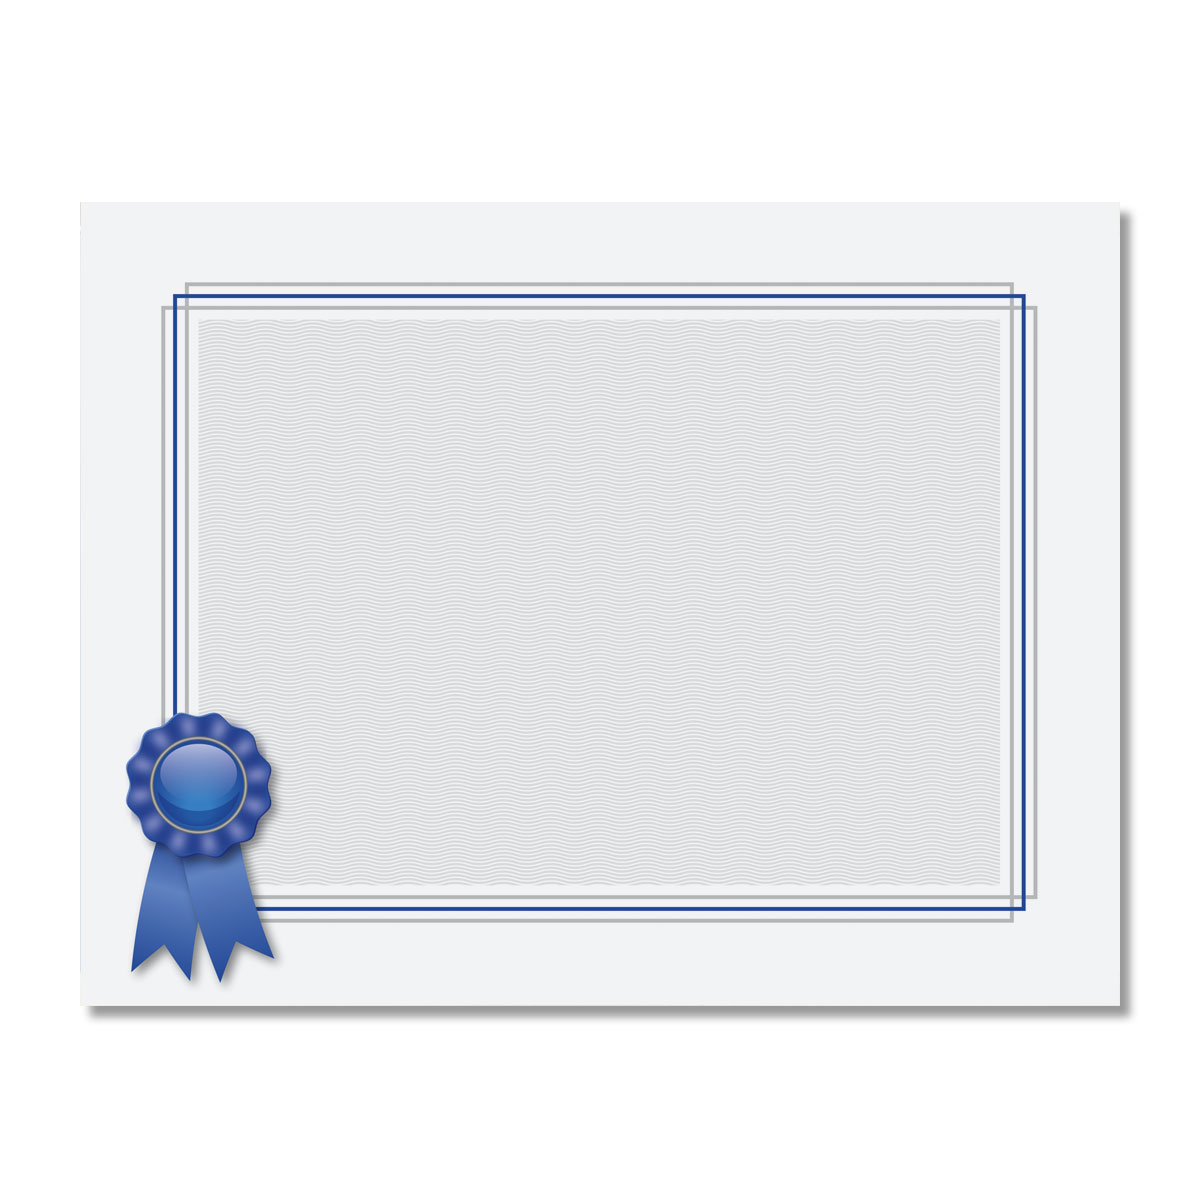 It is a graphic of Printable Certificate Paper with frame